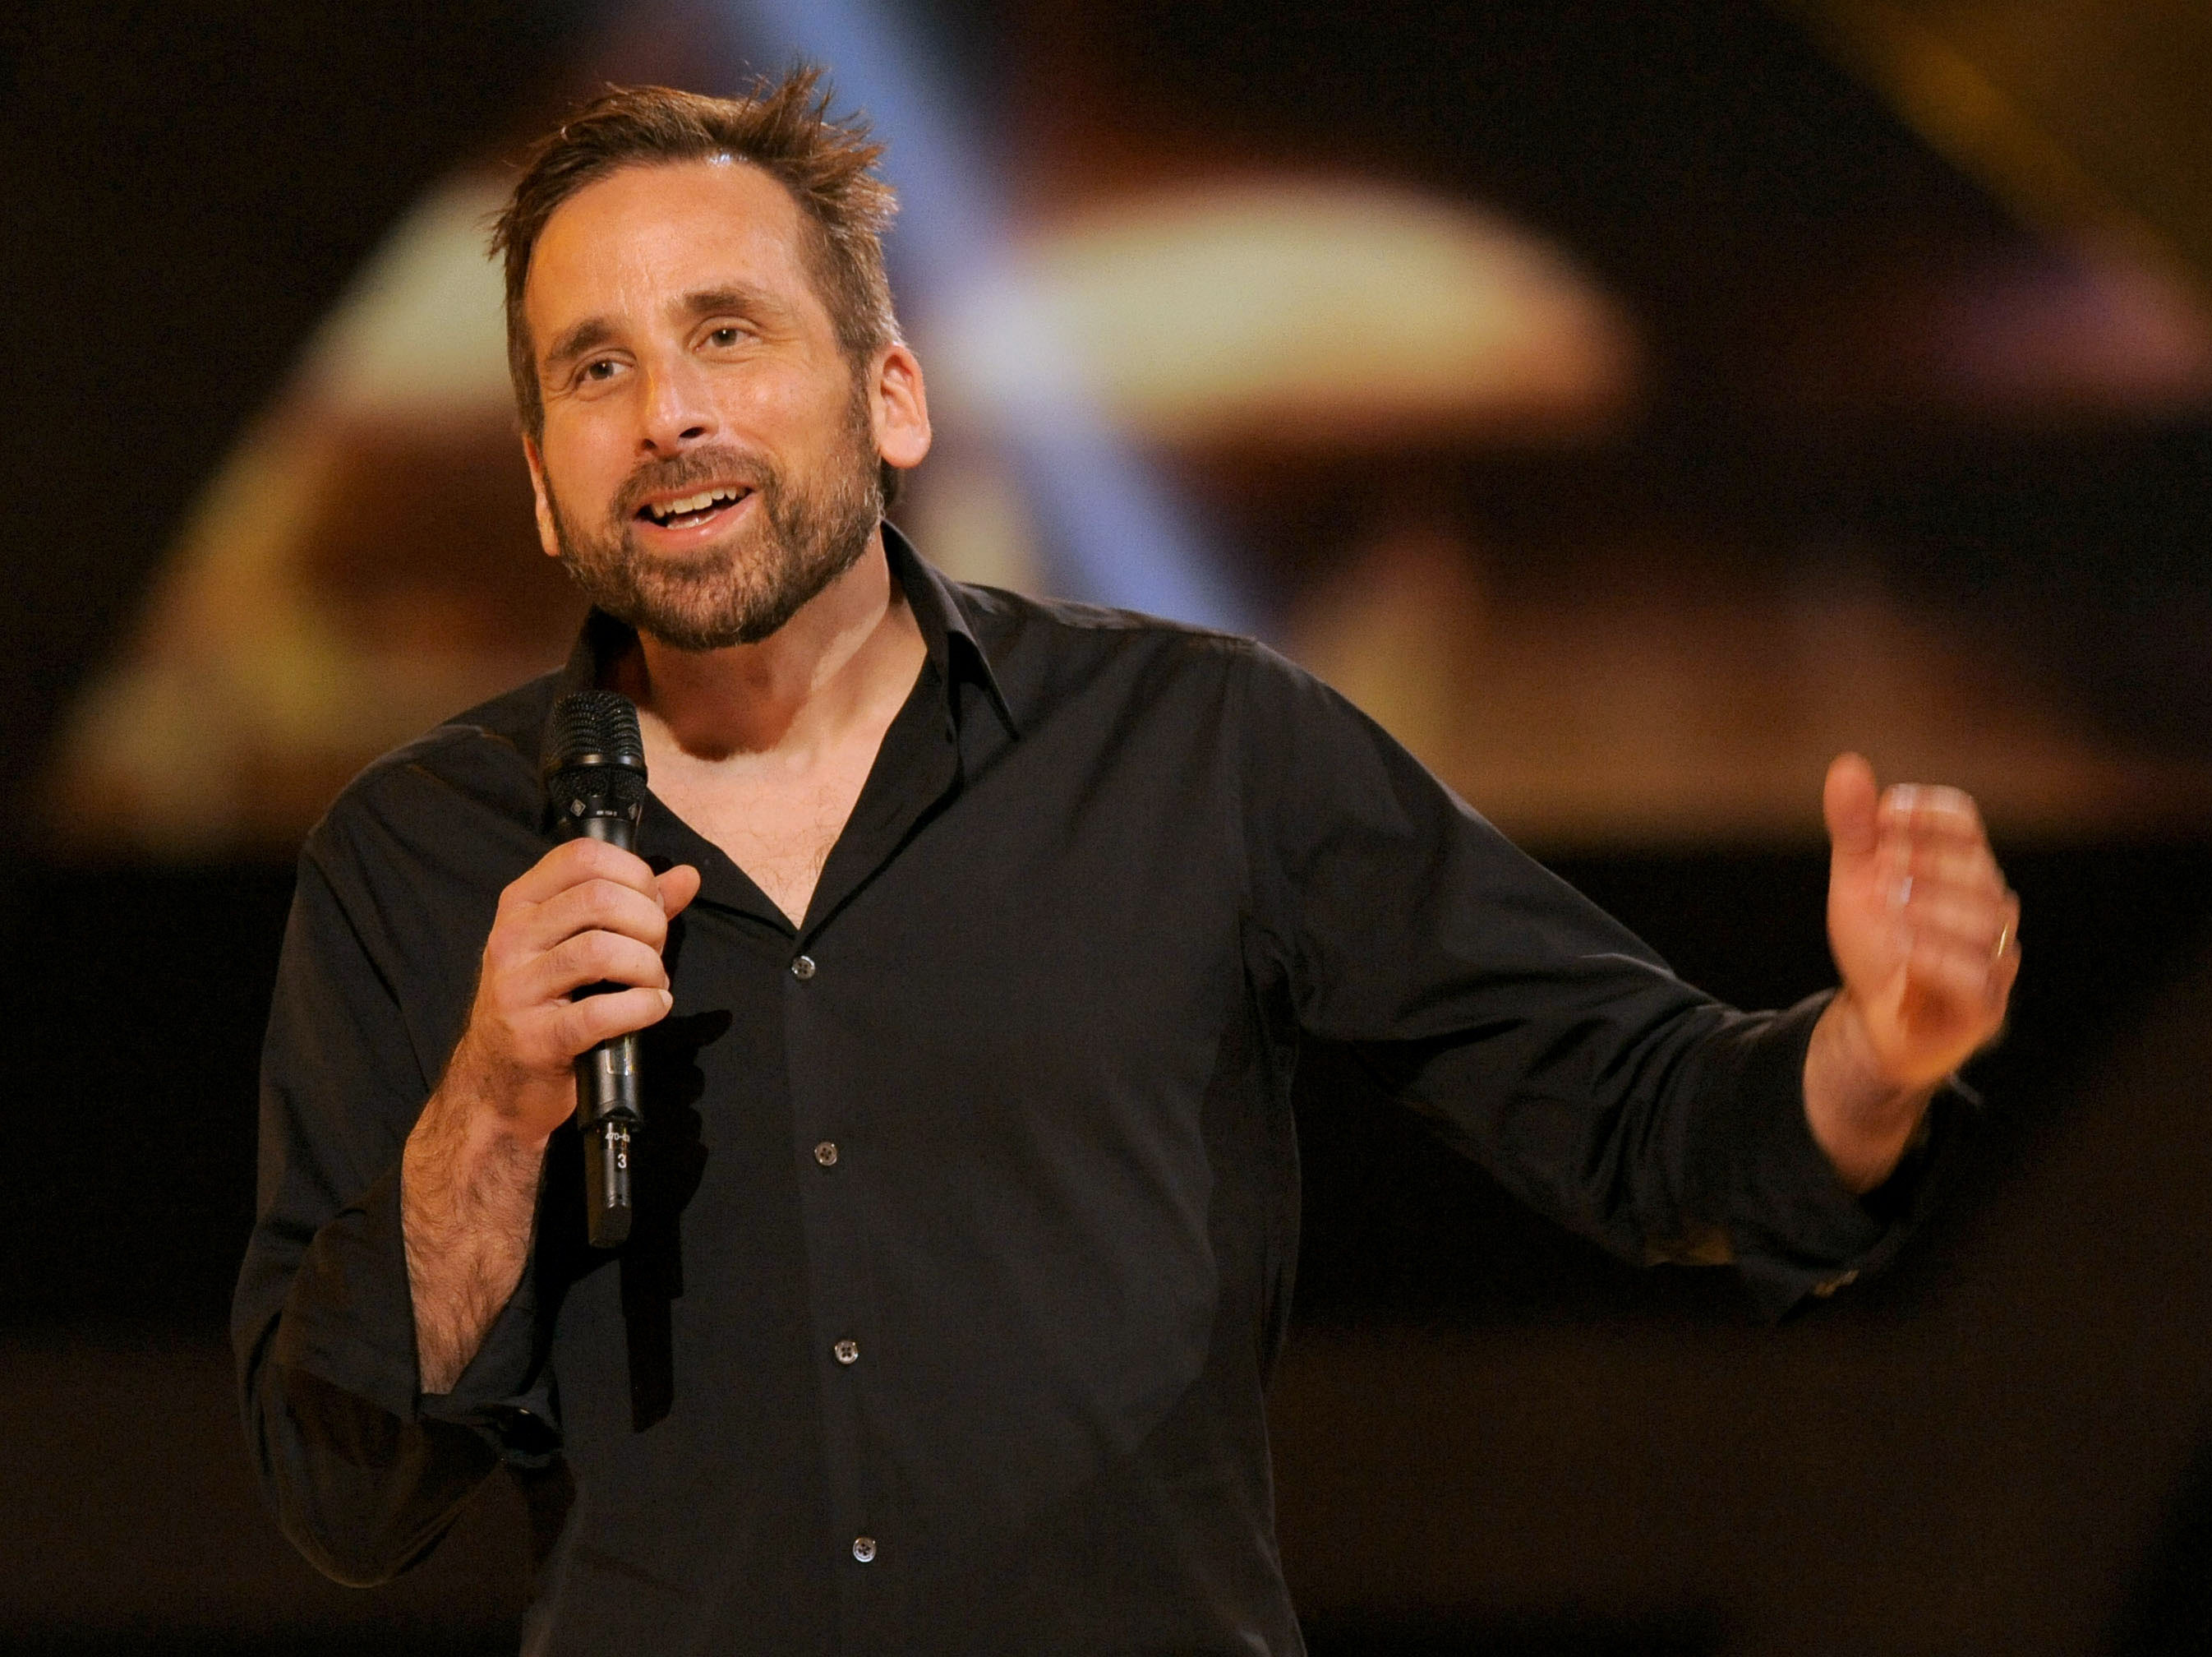 Ken Levine S Next Game Will Harness The Shadow Of Mordor